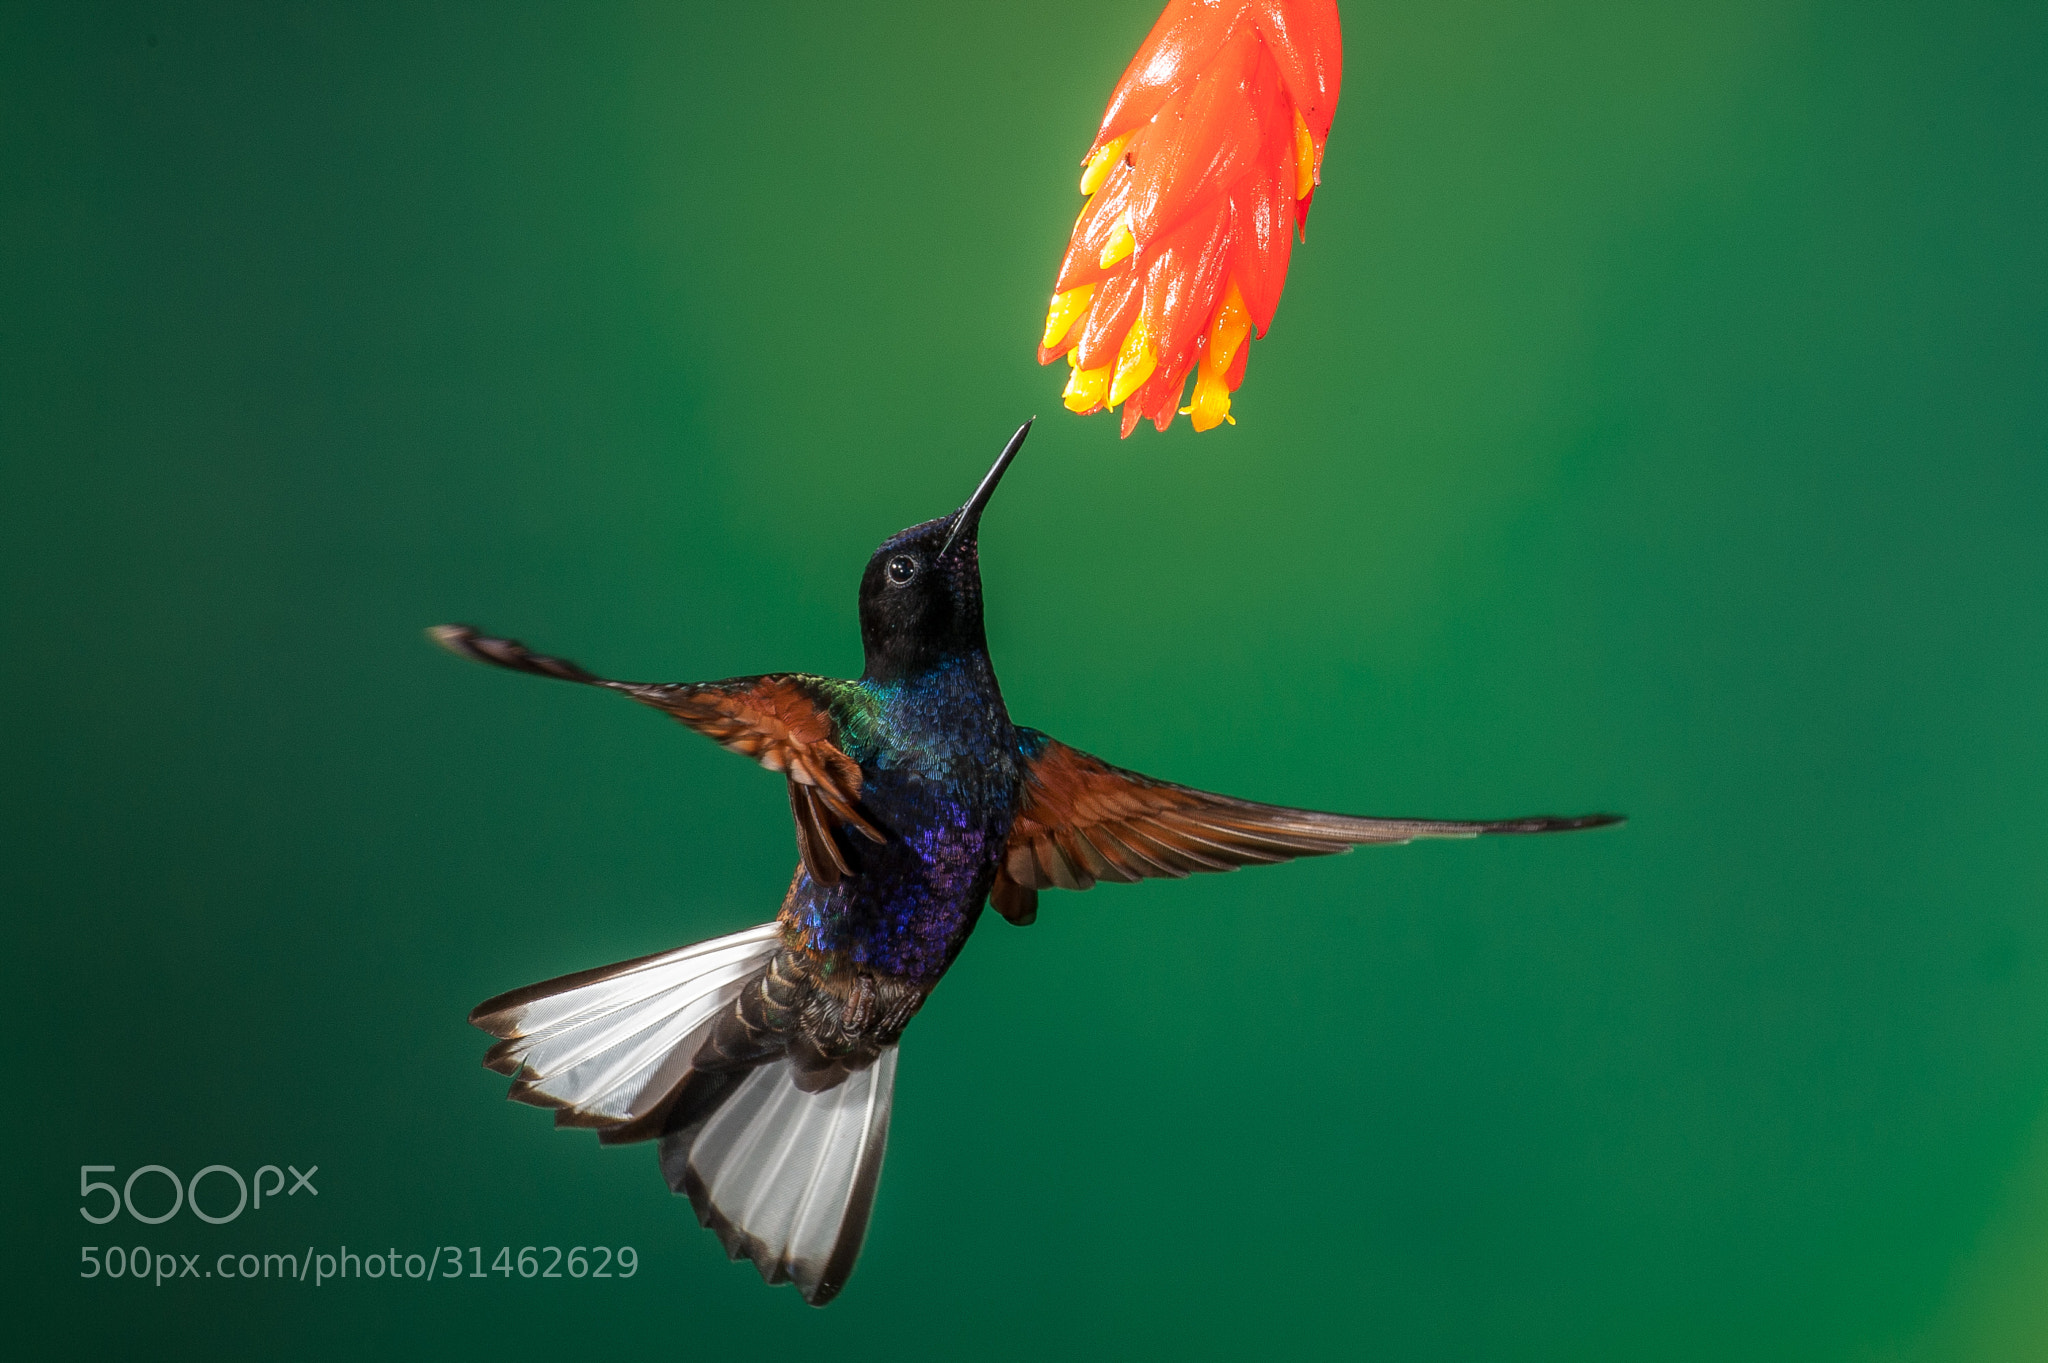 Photograph Hummingbird by Gorazd Golob on 500px